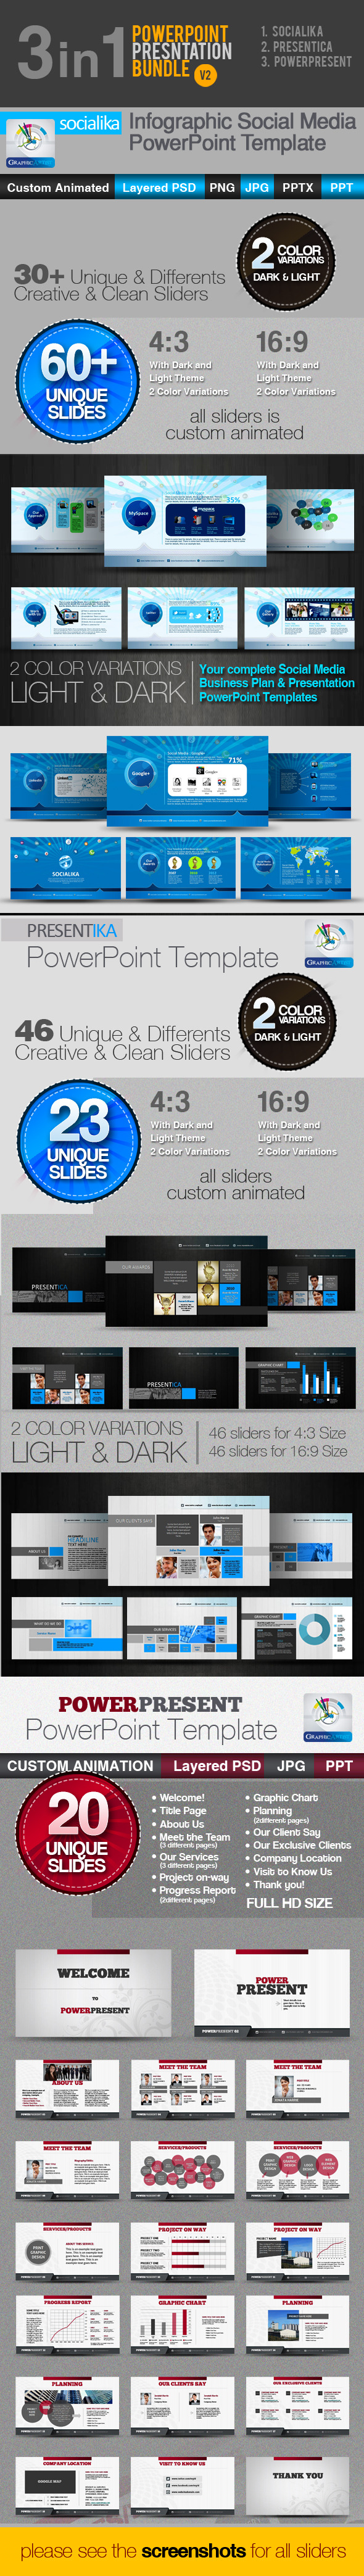 3in1: PowerPoint Templates Bundle v2 - Creative PowerPoint Templates